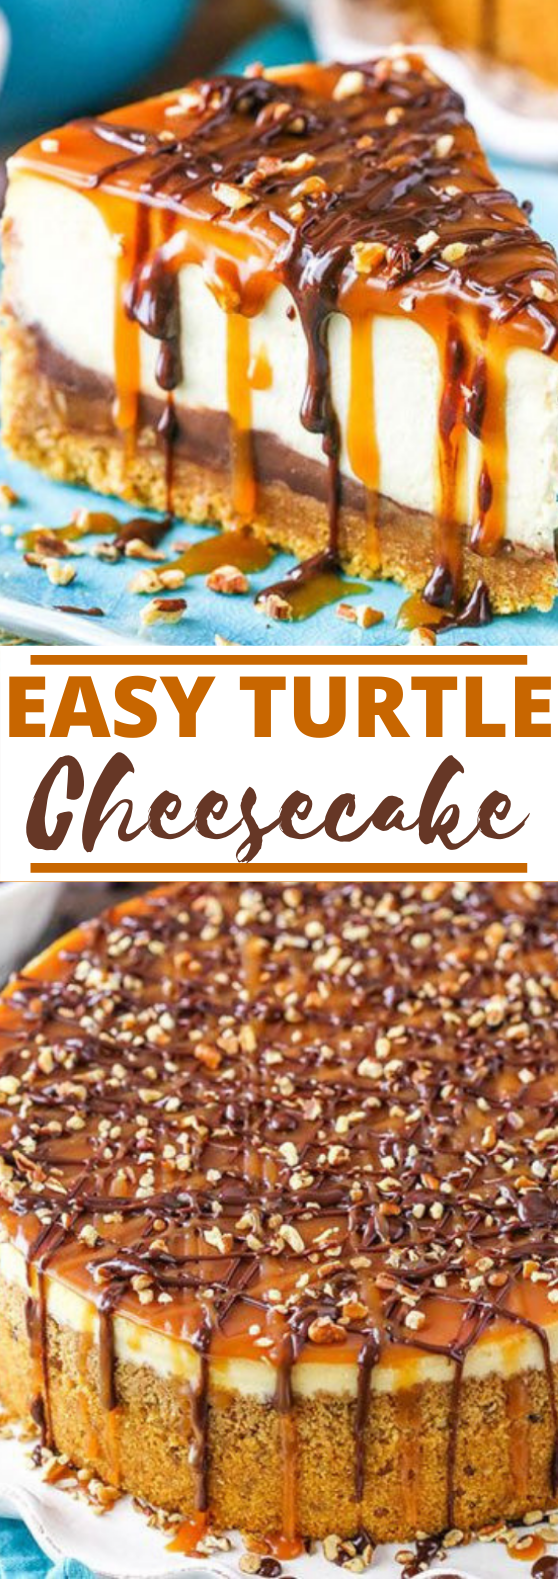 Turtle Cheesecake #desserts #cheesecake #easy #cake #recipes